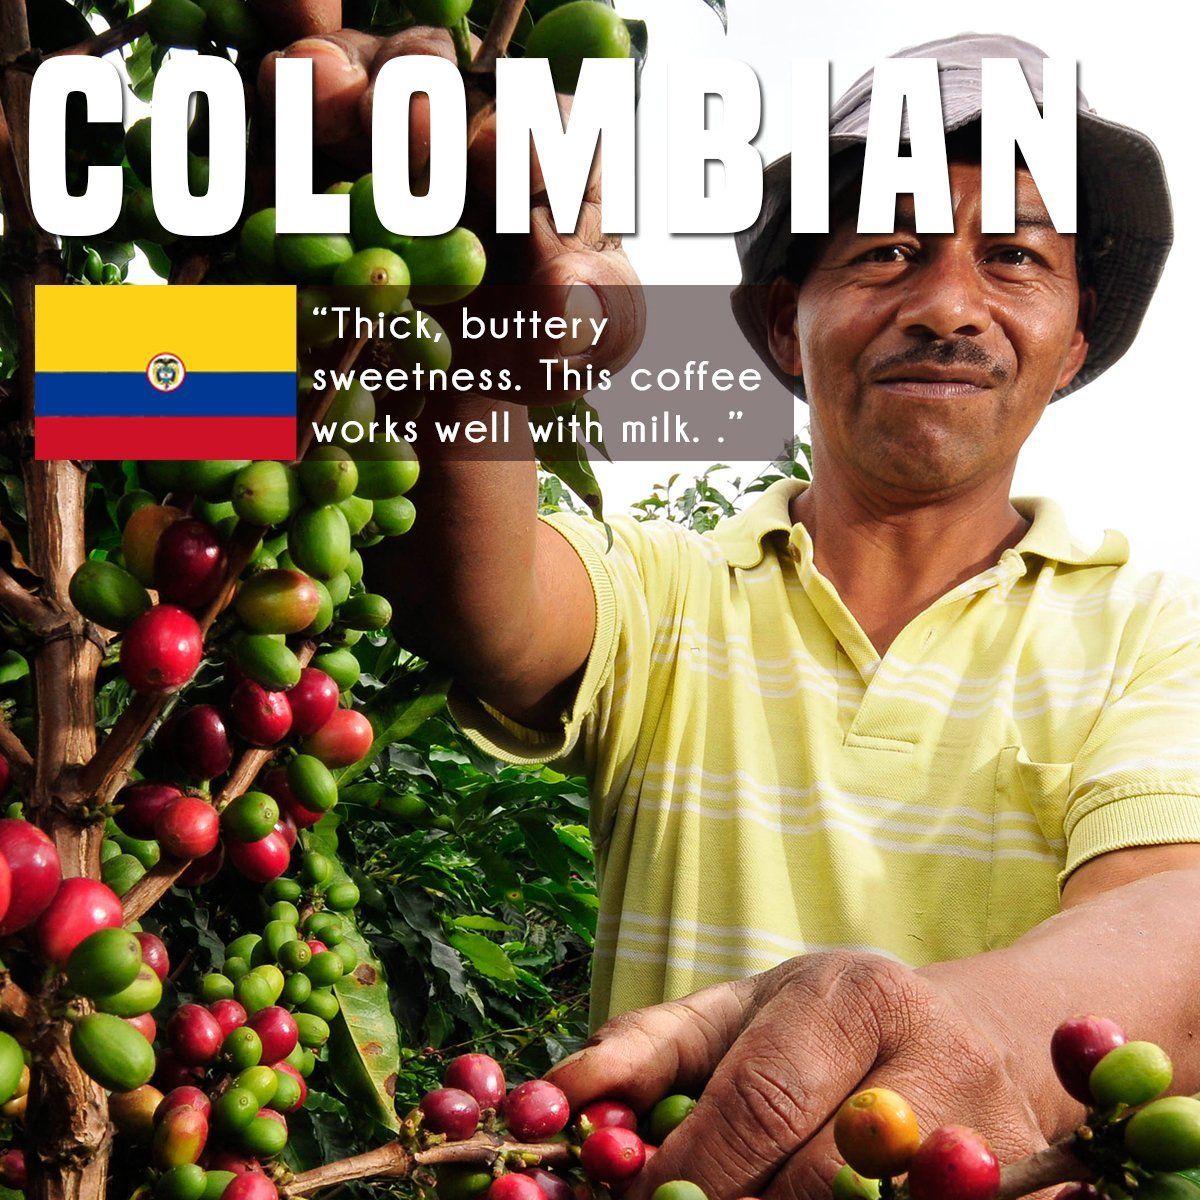 Colombian-Green-Coffee-Beans-100-Arabica-Speciality-Green-Coffee-Beans-From-Colombia-For-Home-Roasting